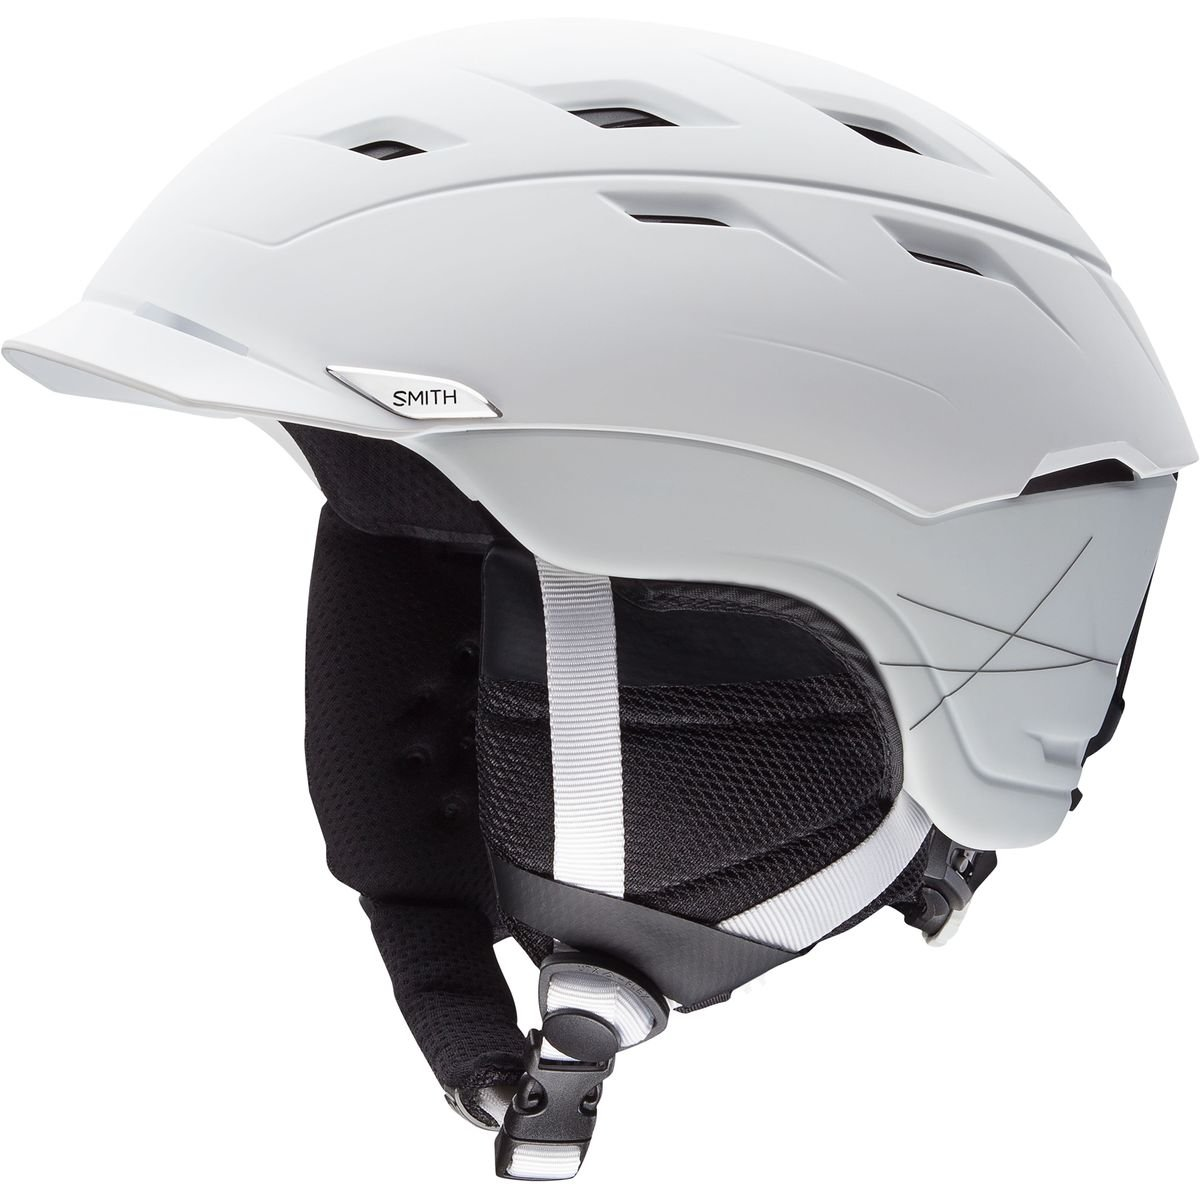 Smith Optics Variance Adult Mips Ski Snowmobile Helmet - Matte White / Medium